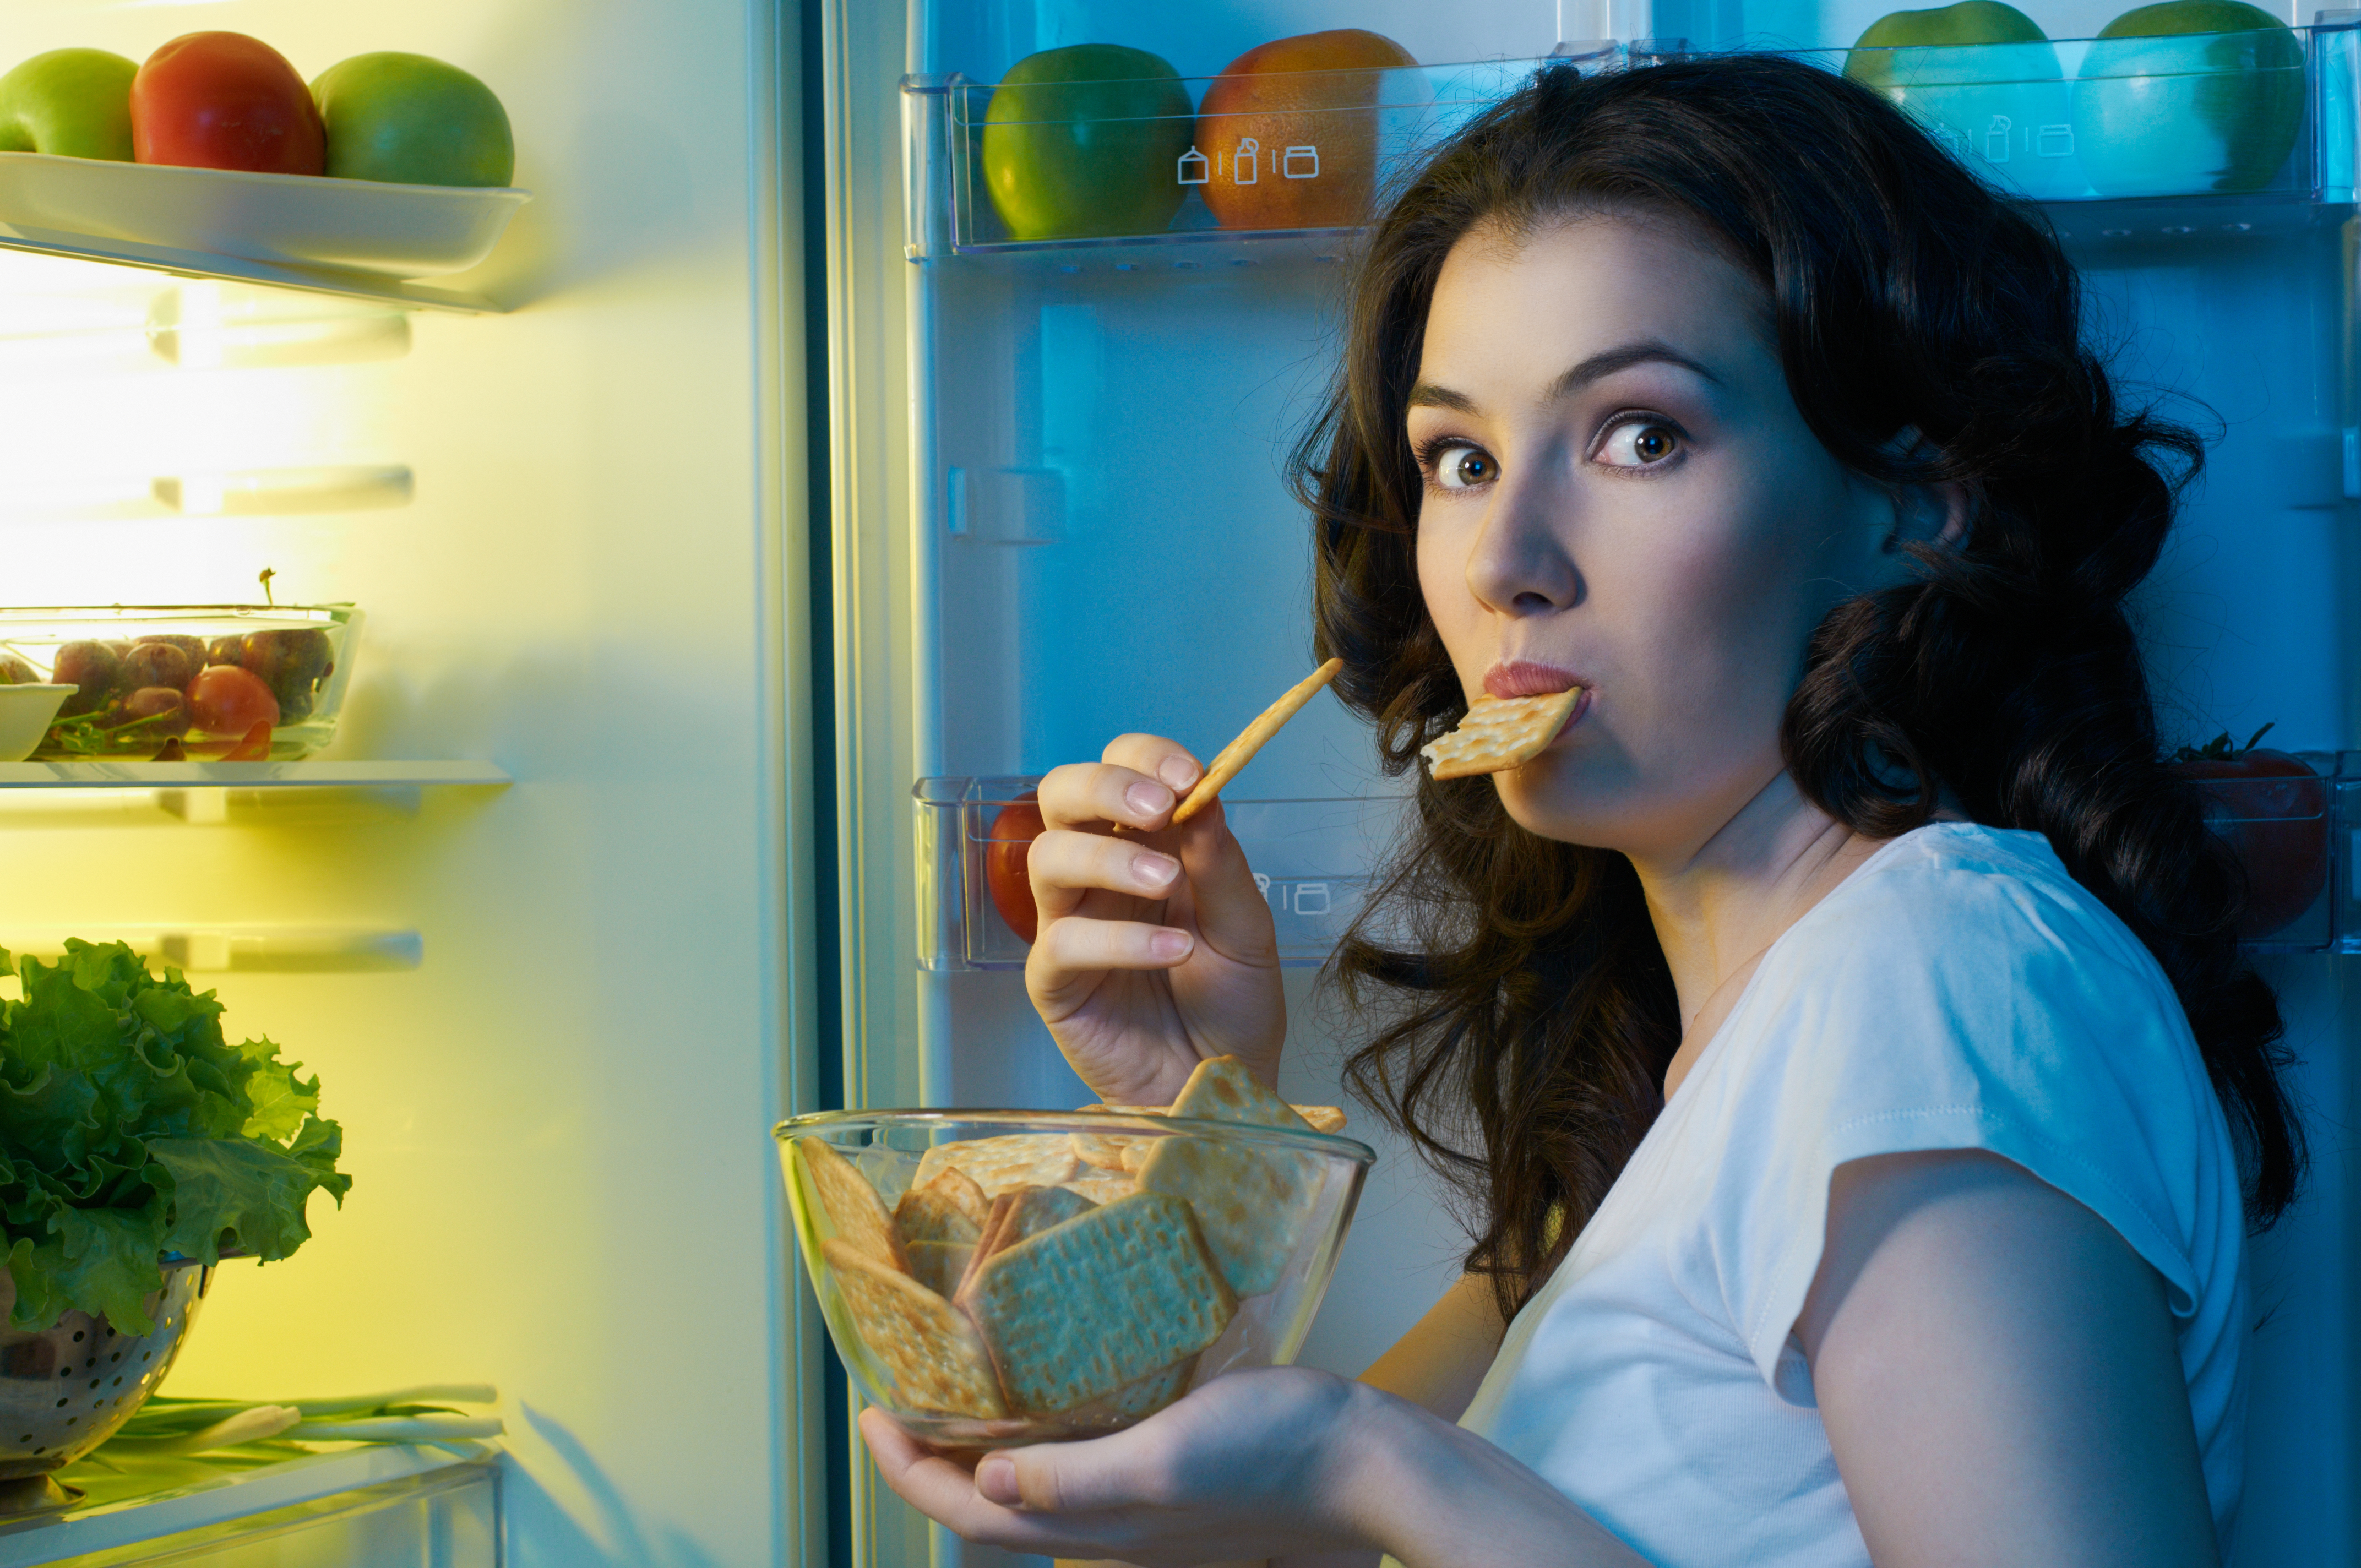 Intermittent fasting can help you lose weight  But can it make you